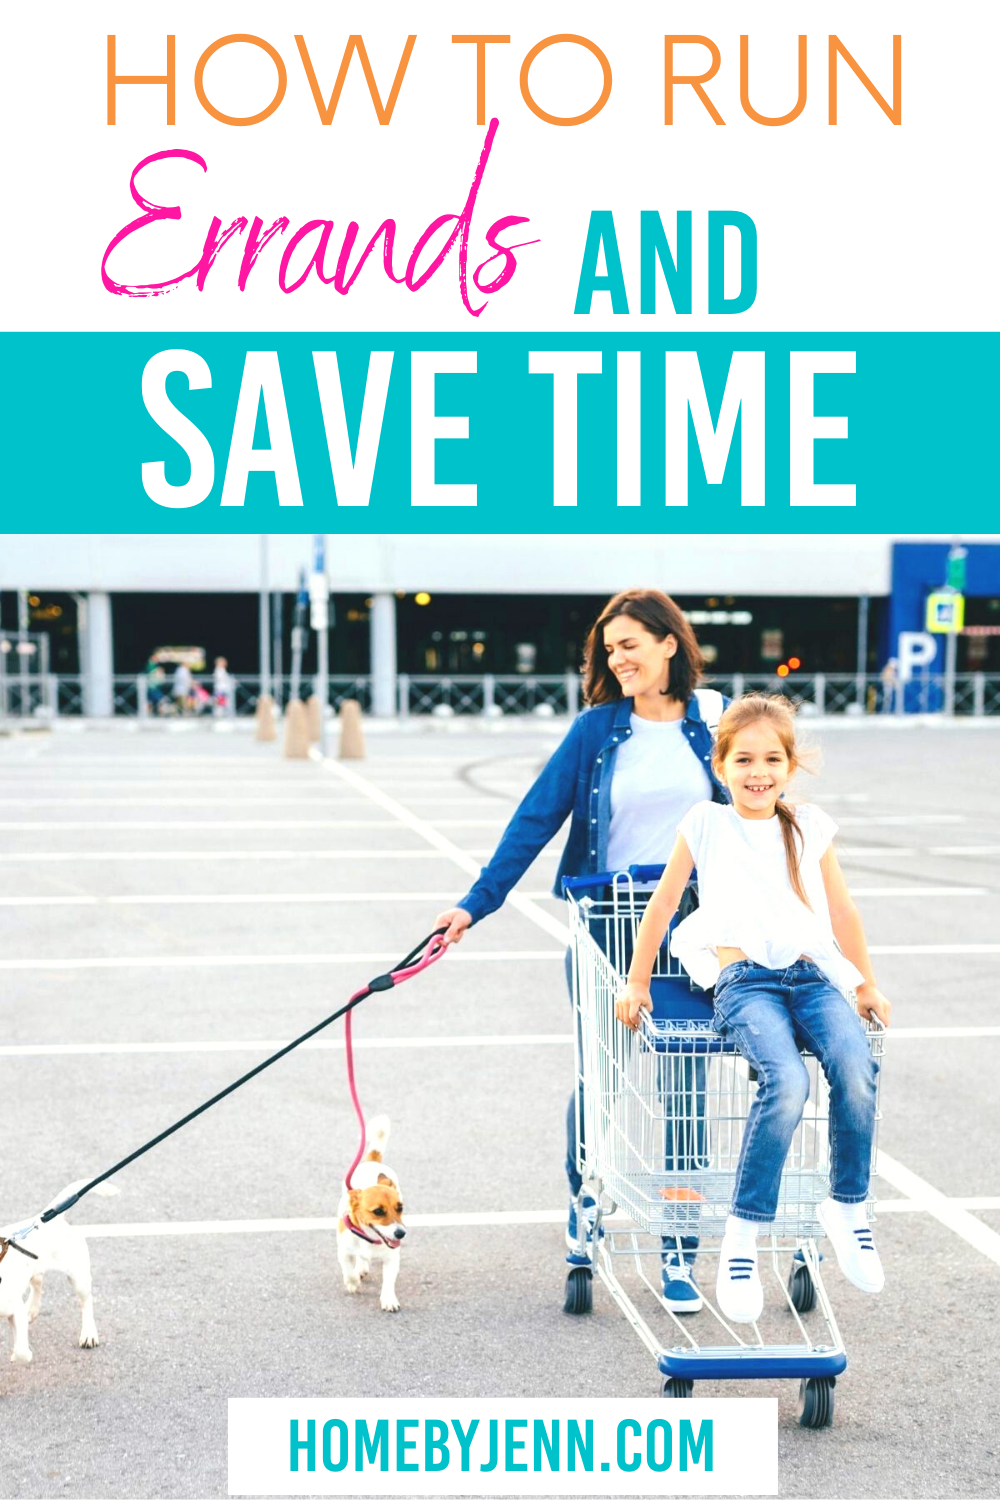 Save time by creating an errand day. By creating an errand day you'll be more productive. #timemanagement #timemanagementtips #savetime via @homebyjenn